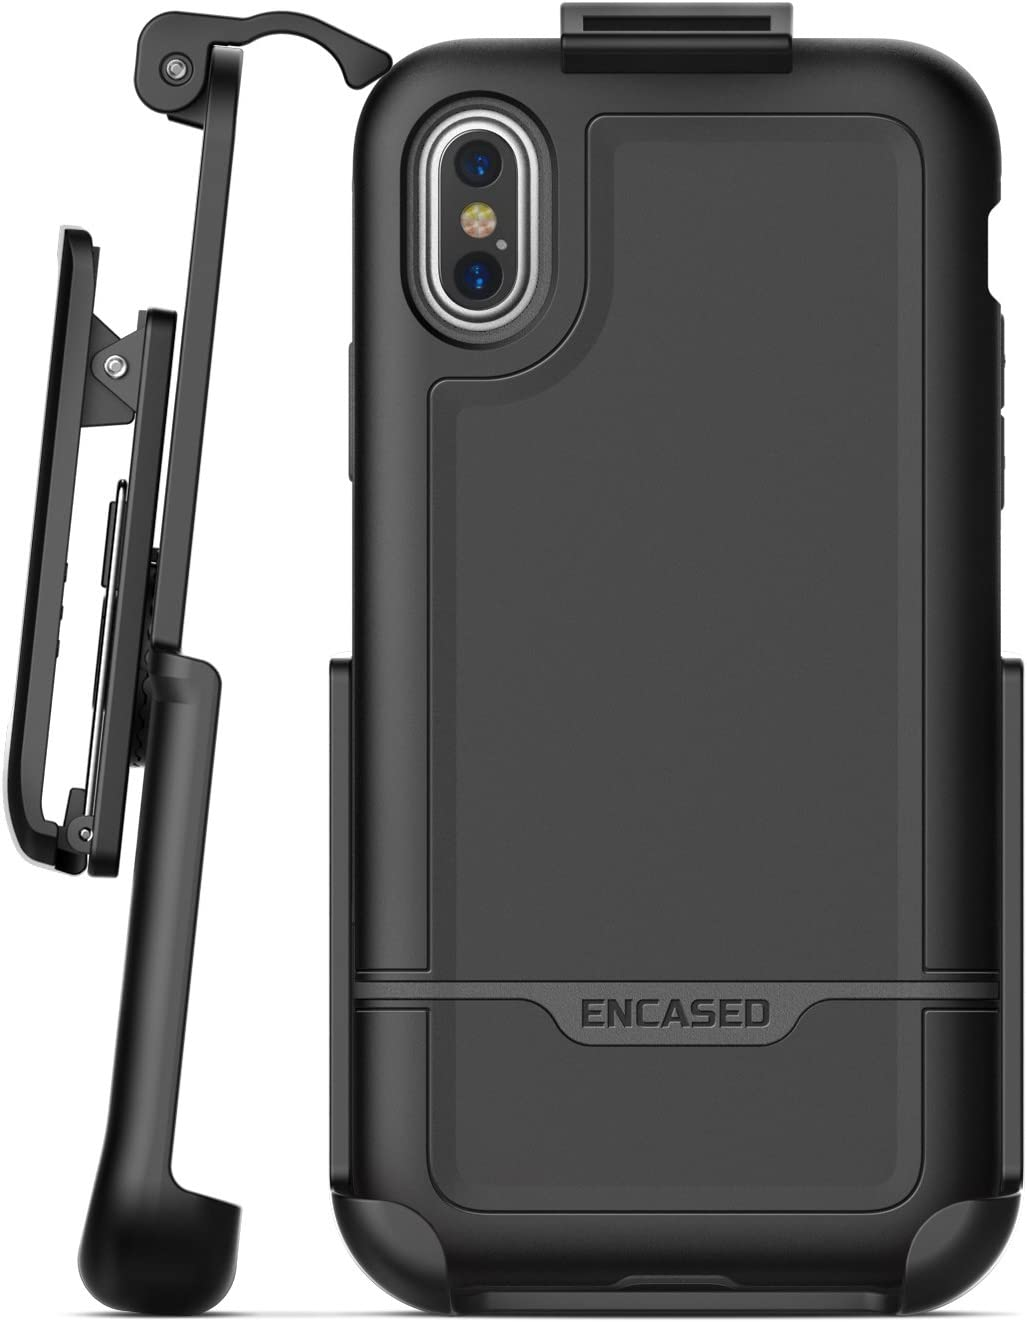 Encased Clip Holster iPhone X/iPhone Xs Belt Case, (Rebel Series) Heavy Duty Protective Cover Compatible with Apple iPhone X (Black)